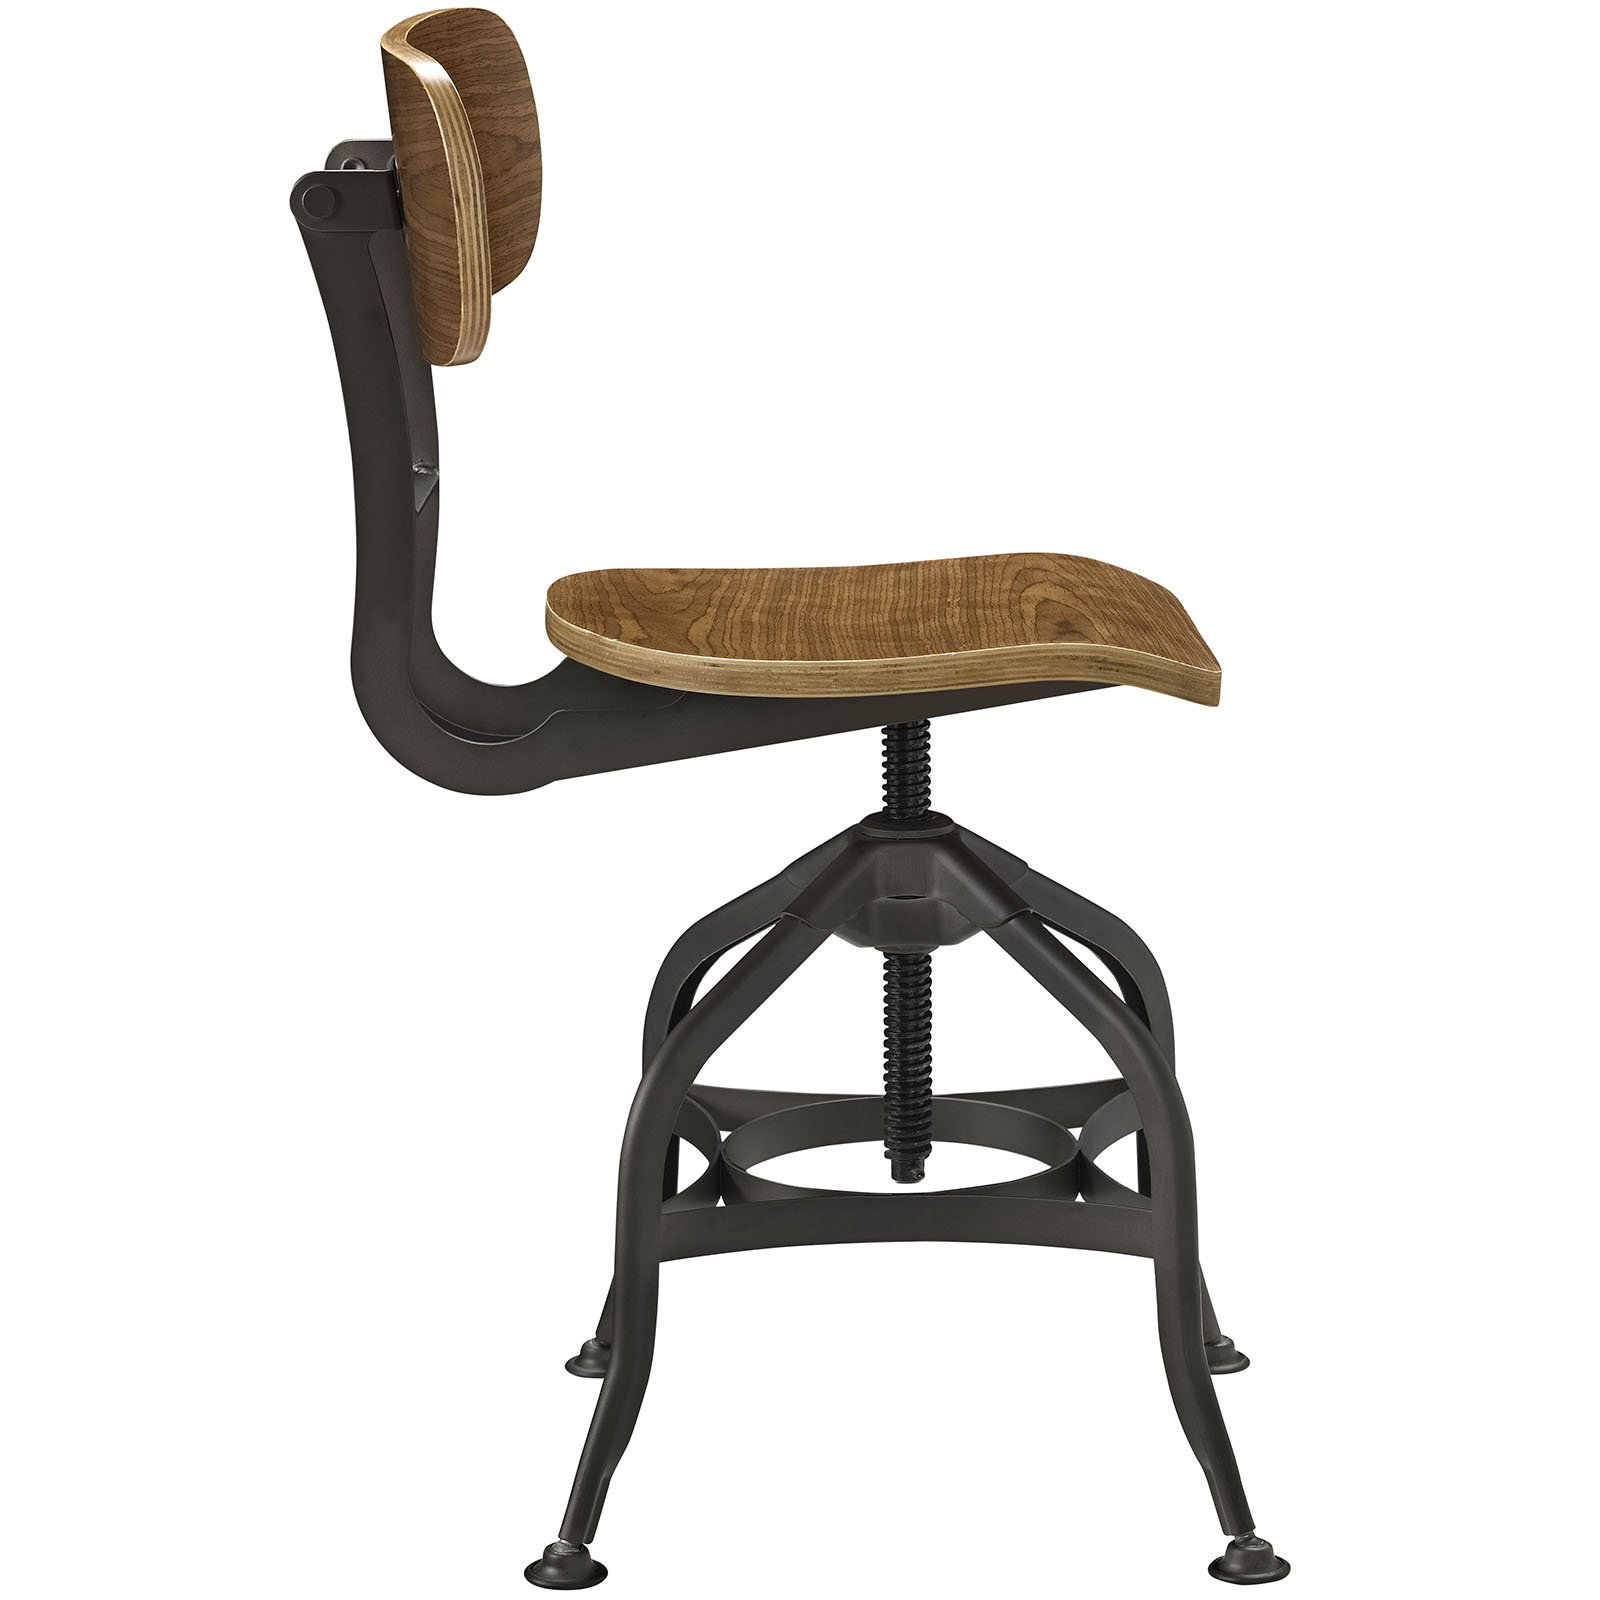 Modway Mark Industrial Dining Stool, Brown by Modway (Image #2)